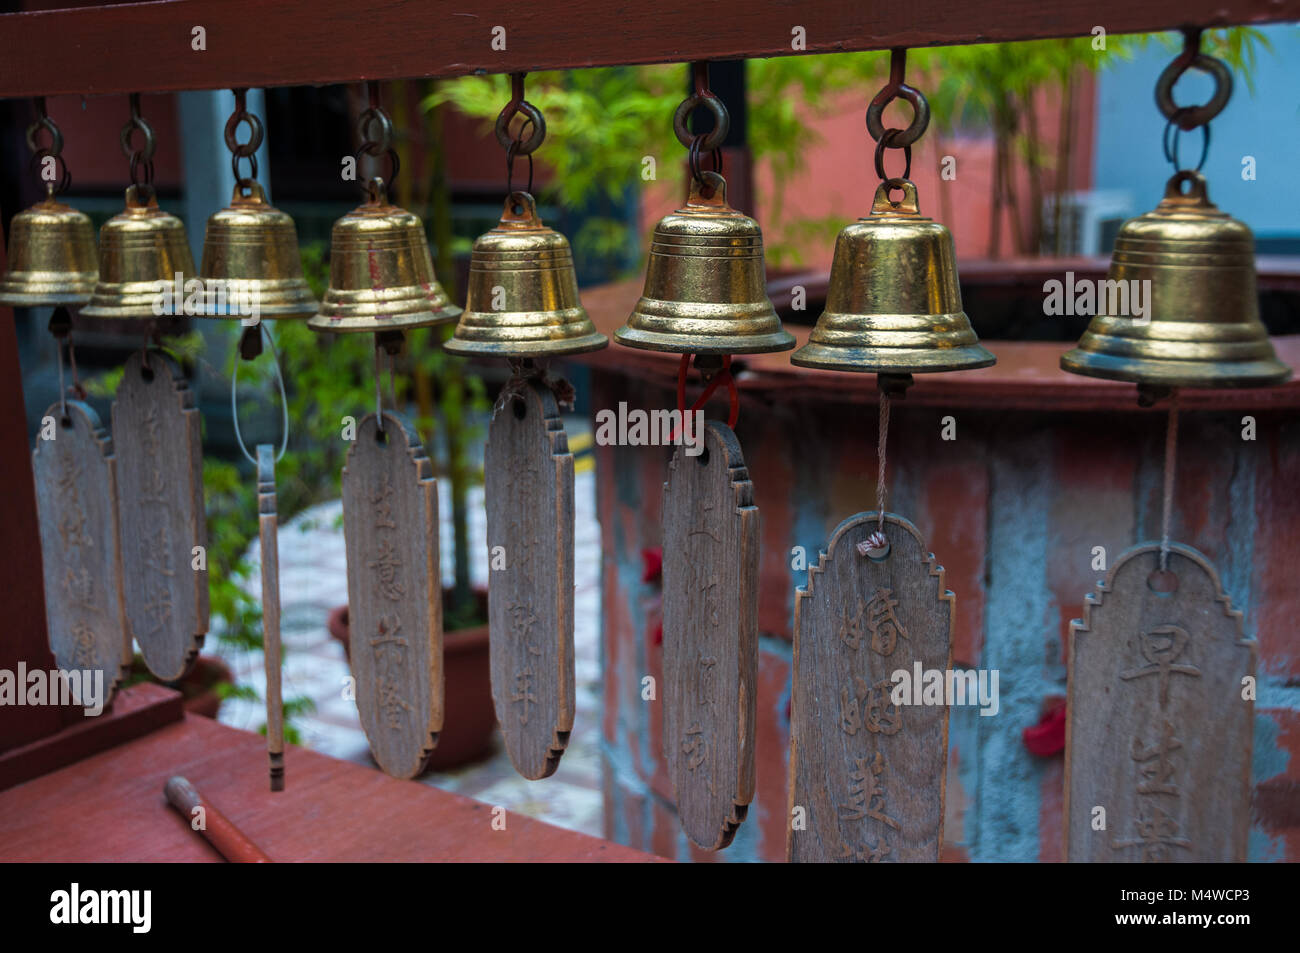 A row of bells at the  in Singapore's Chinatown area. - Stock Image